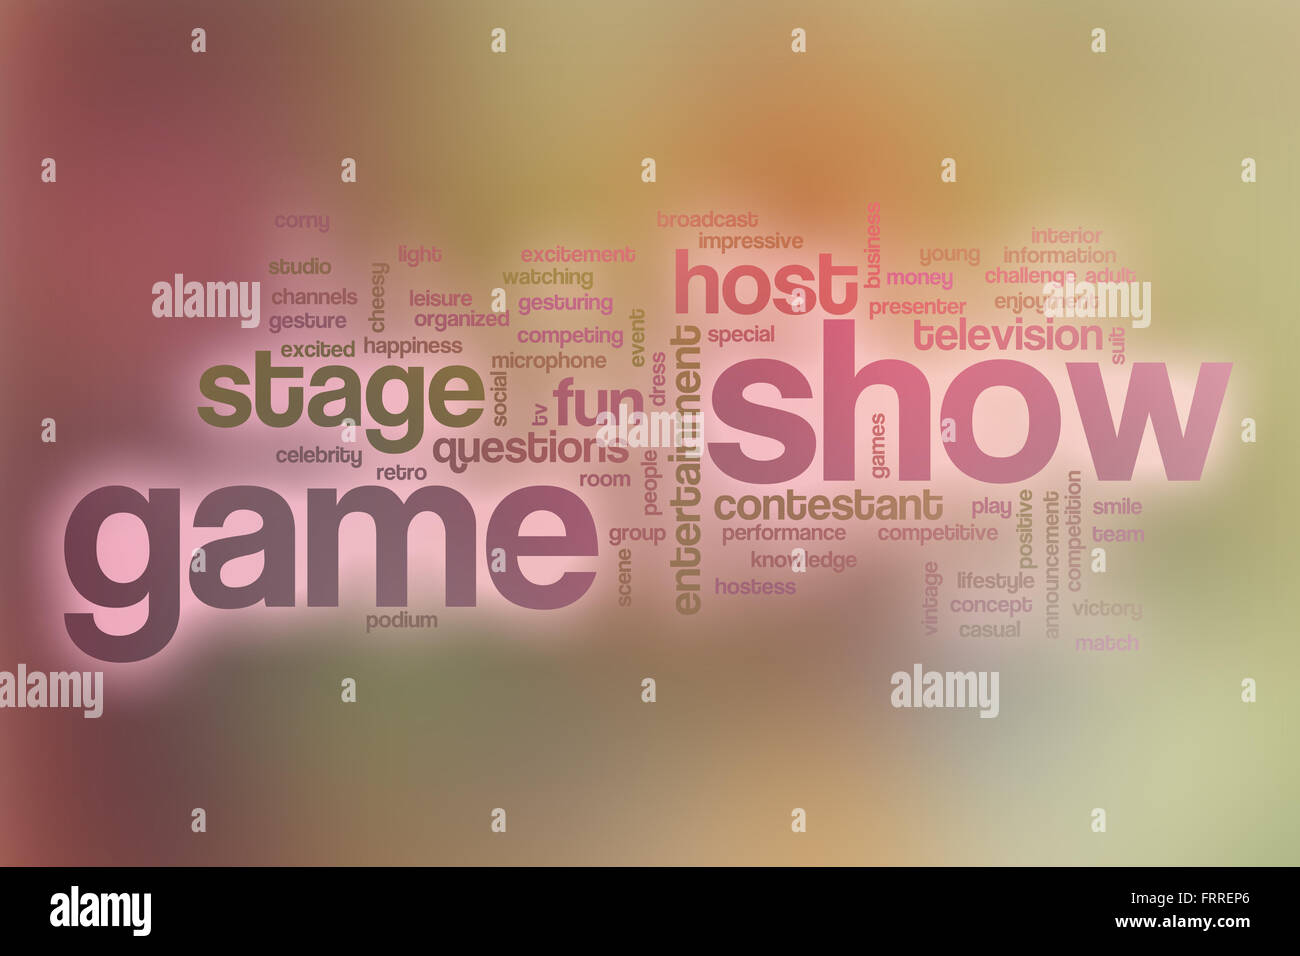 Game show word cloud concept with abstract background - Stock Image